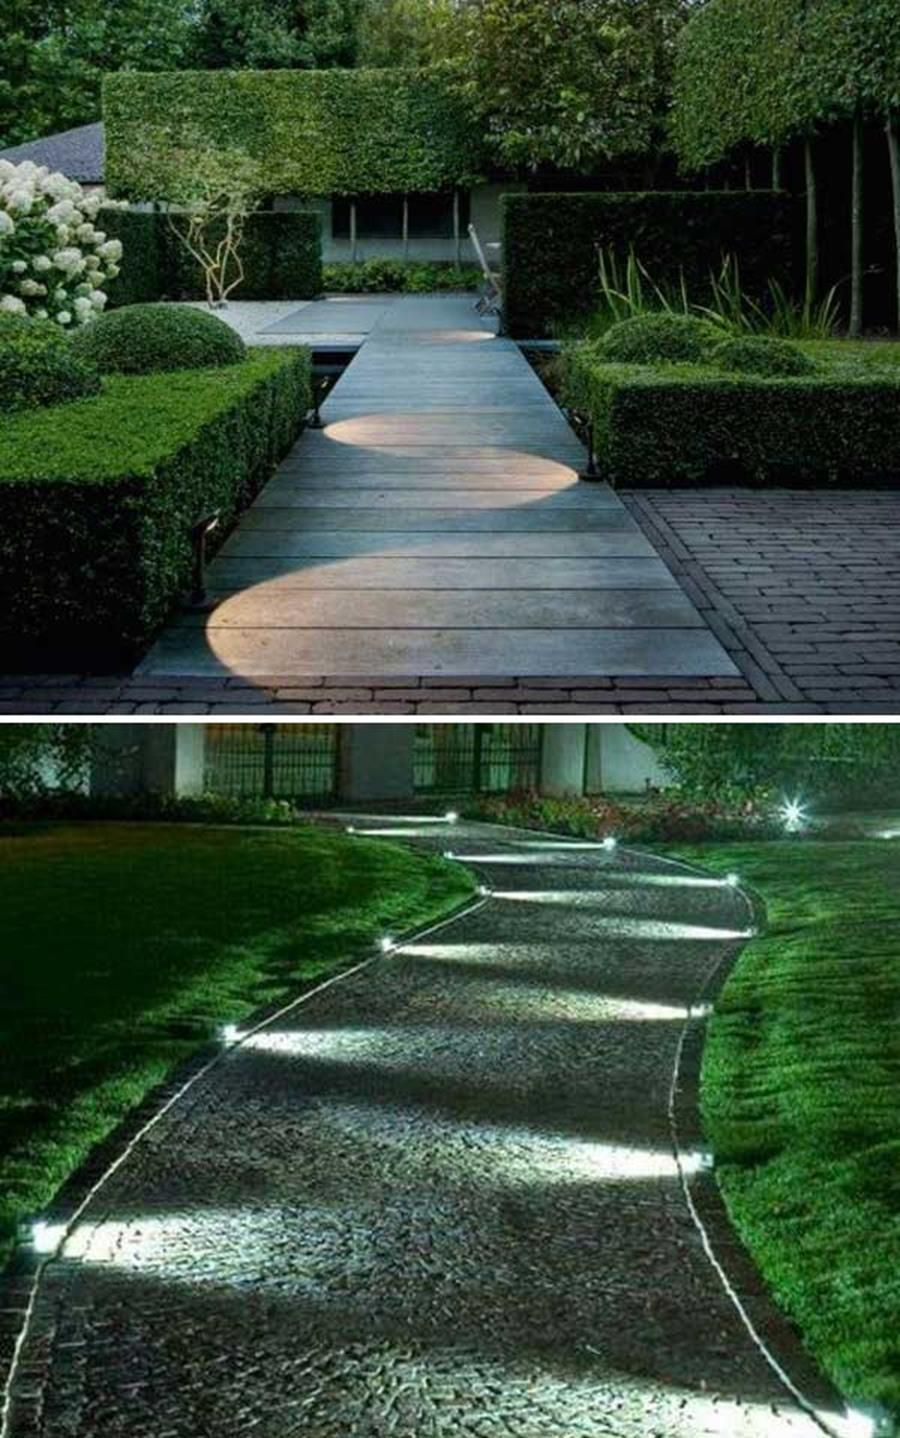 Modern Garden Modern Garden Design Modern Garden Ideas Modern Garden Landscaping Modern G In 2020 Diy Outdoor Lighting Landscape Lighting Design Backyard Lighting